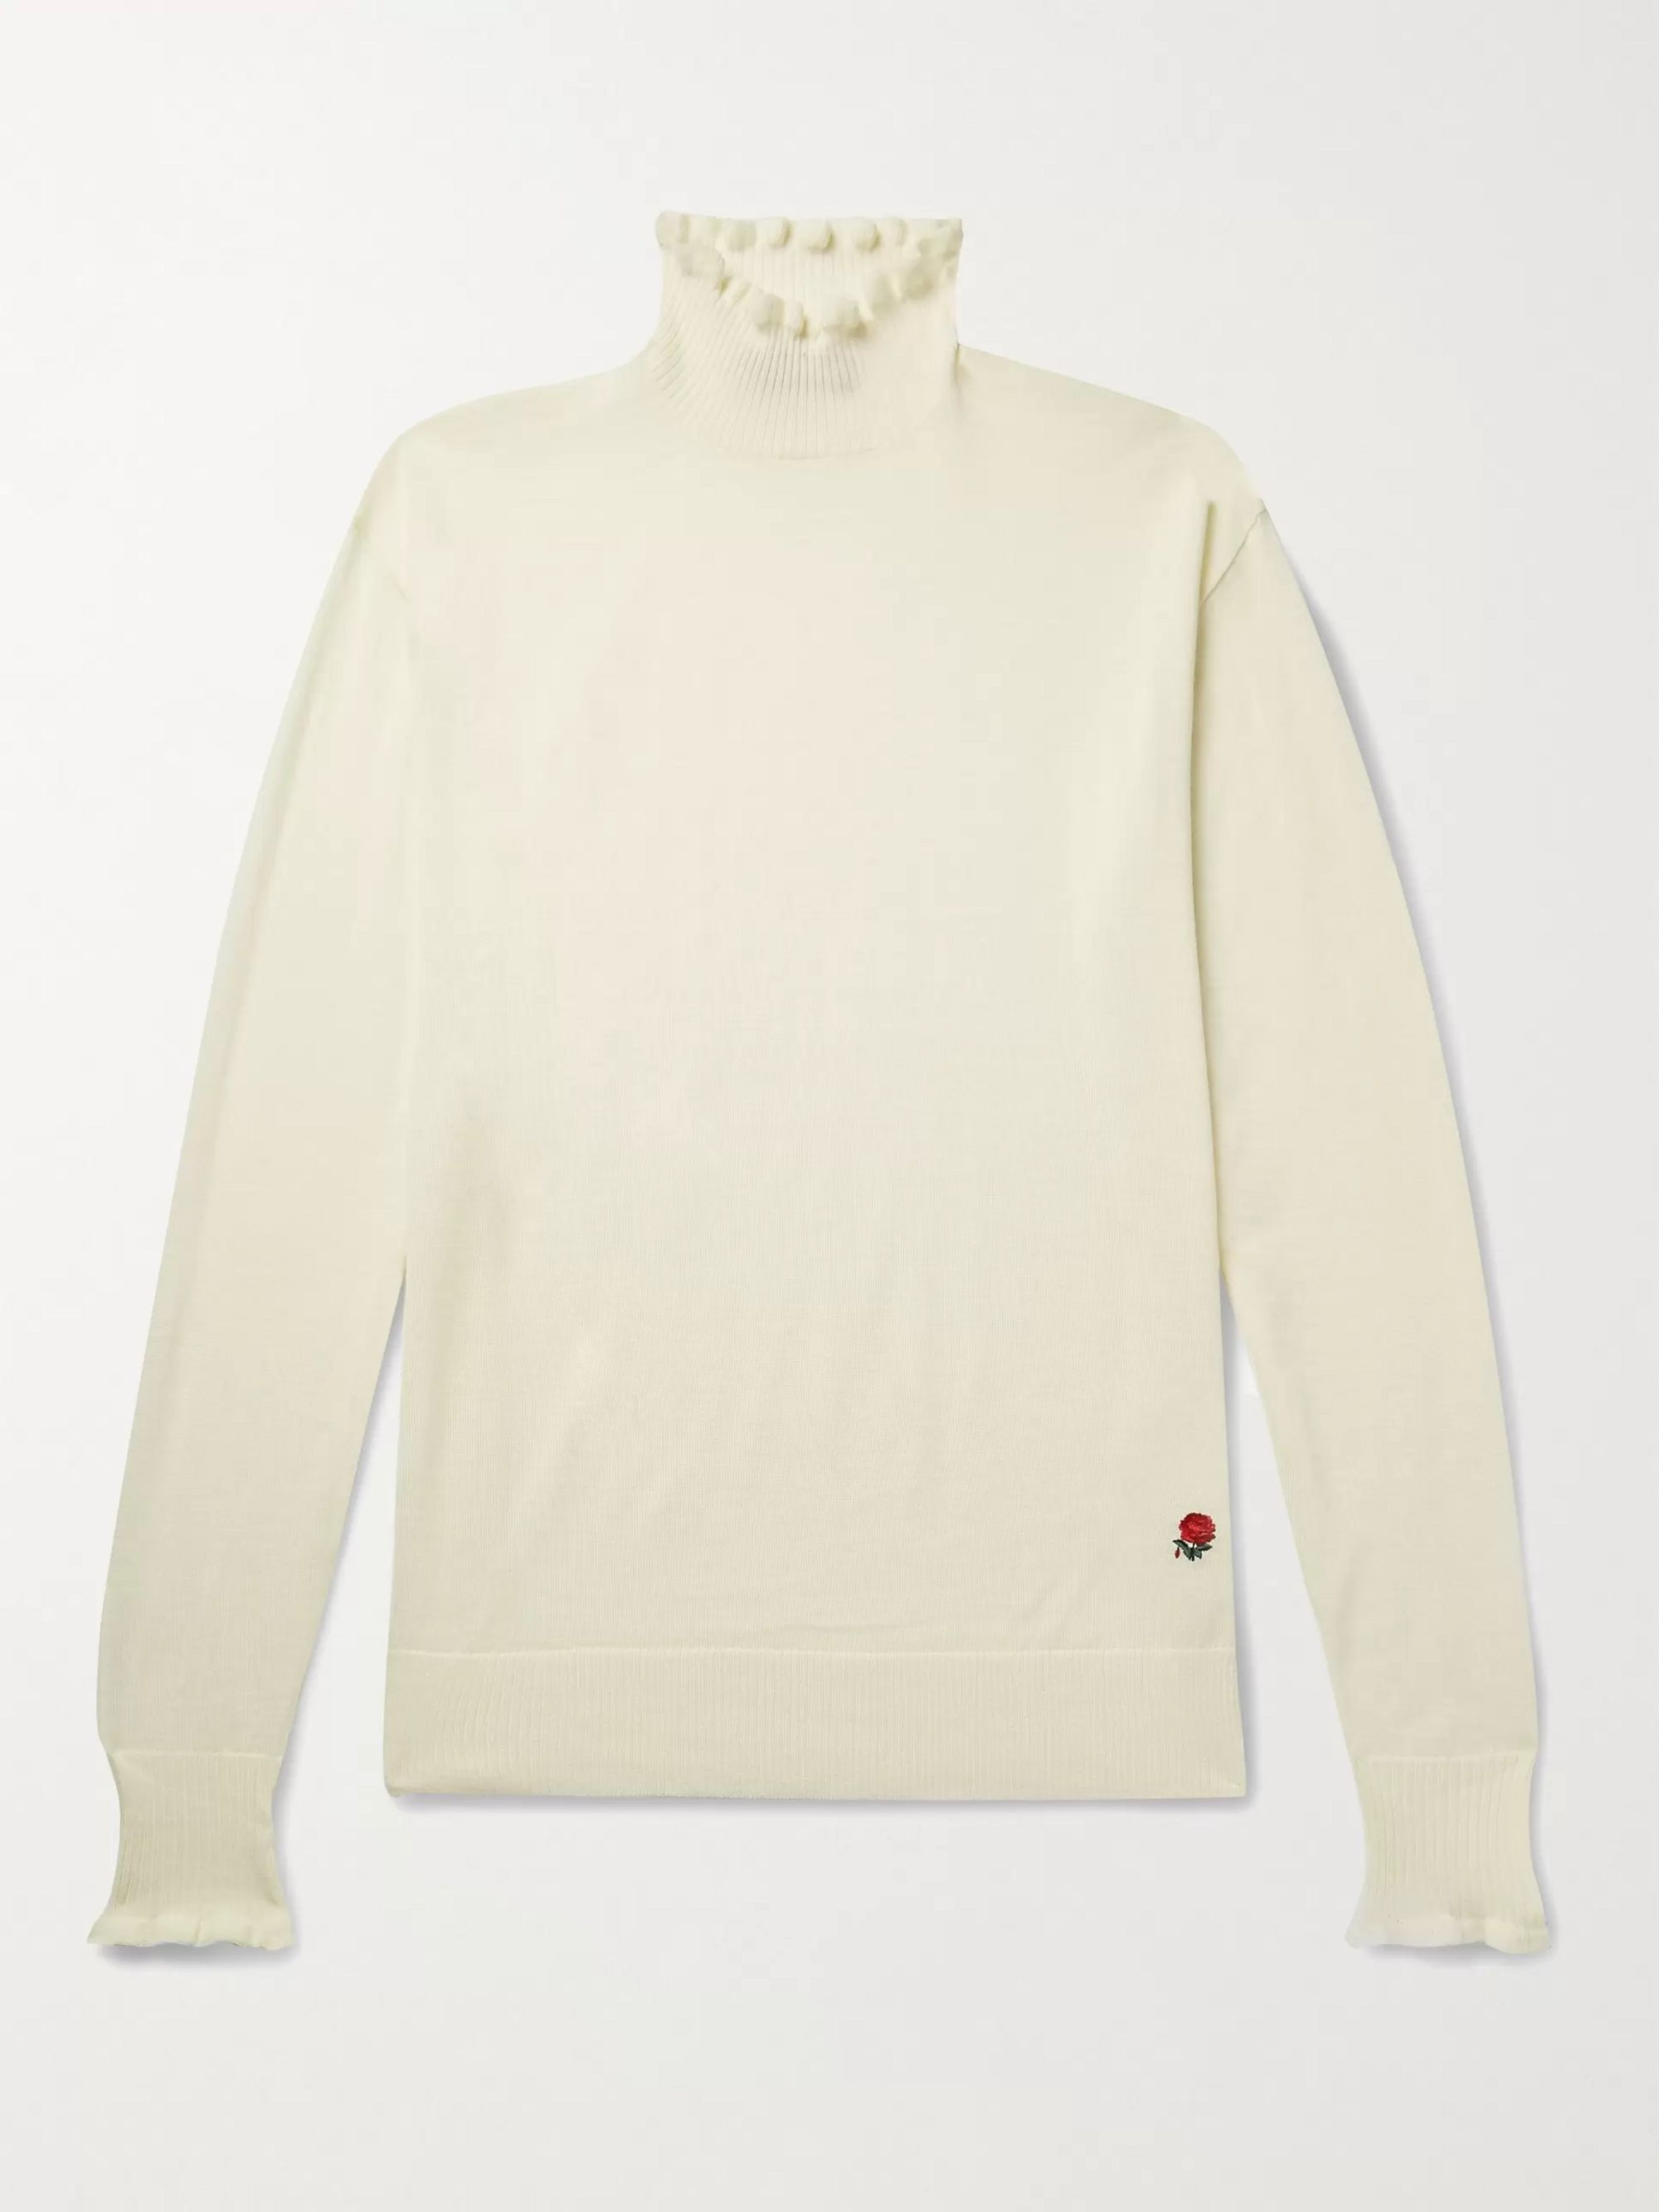 Undercover Wool Rollneck Sweater